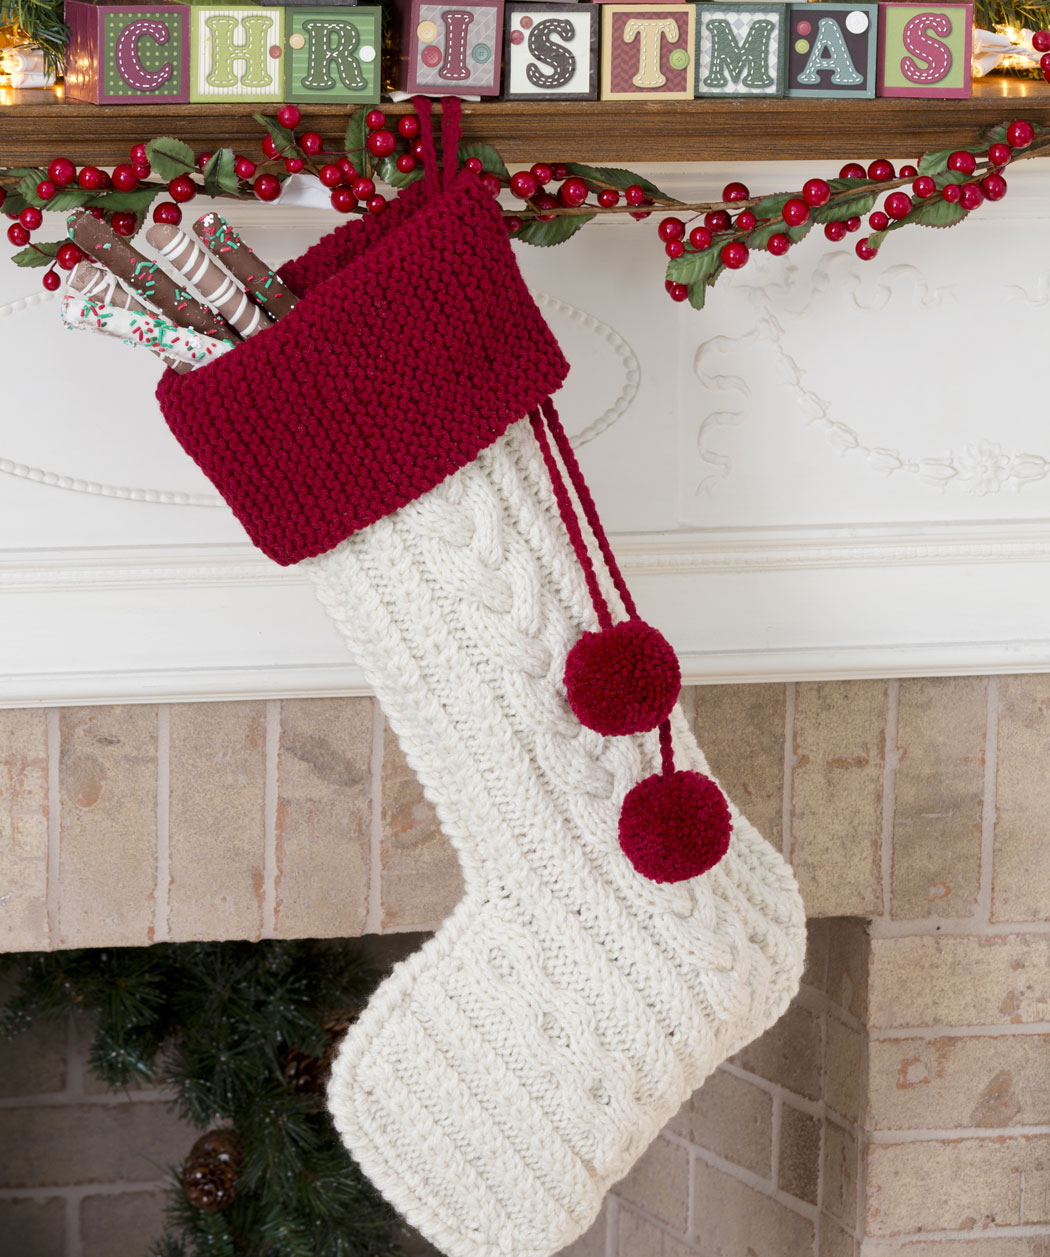 Knit Christmas Stockings Patterns : The Knitting Needle and the Damage Done: A Run of Christmas Stockings